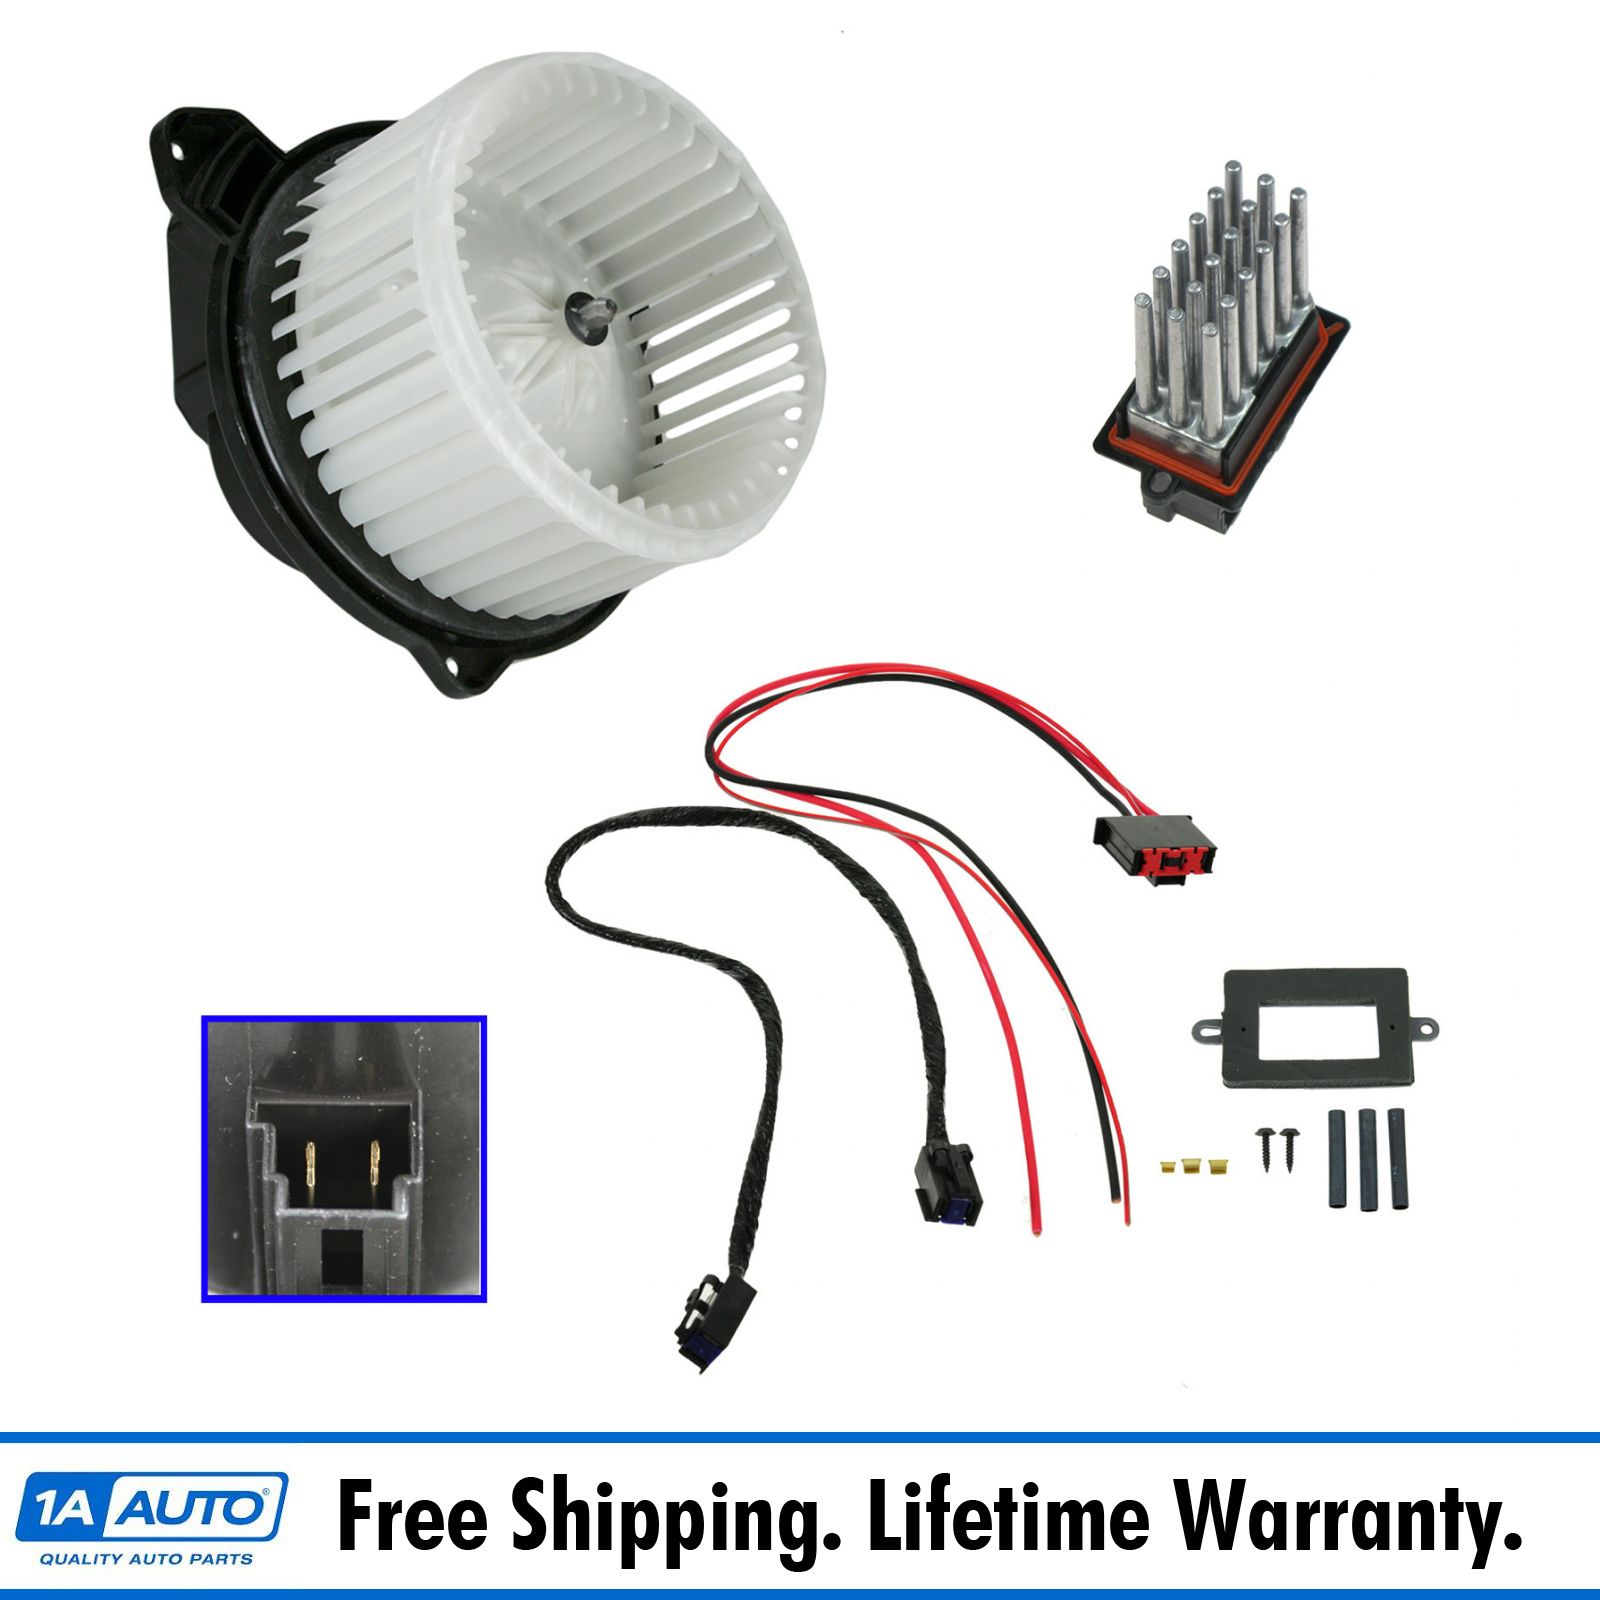 2002 jeep grand cherokee heater wiring blower motor and resistor upgraded atc kit set for 02 04 jeep  blower motor and resistor upgraded atc